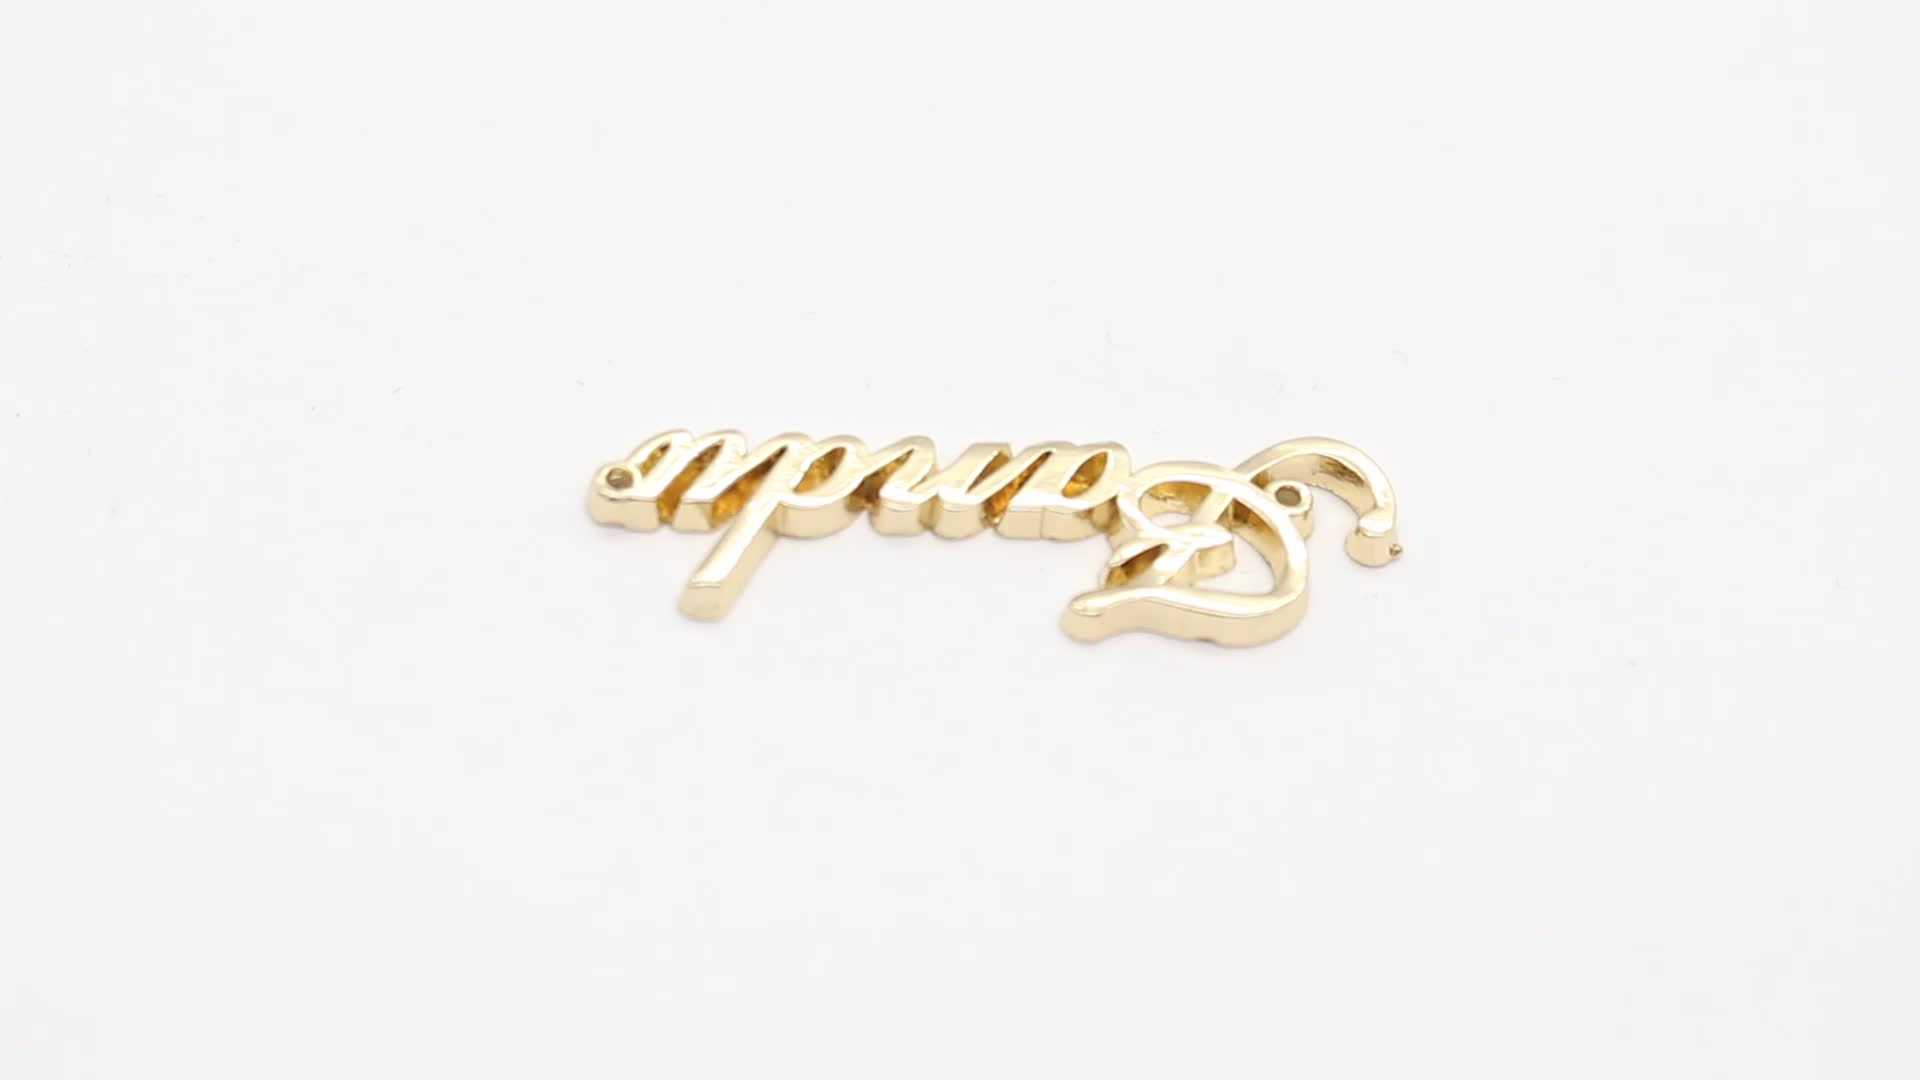 OEM high quality letters gold color metal label and tag for handbag